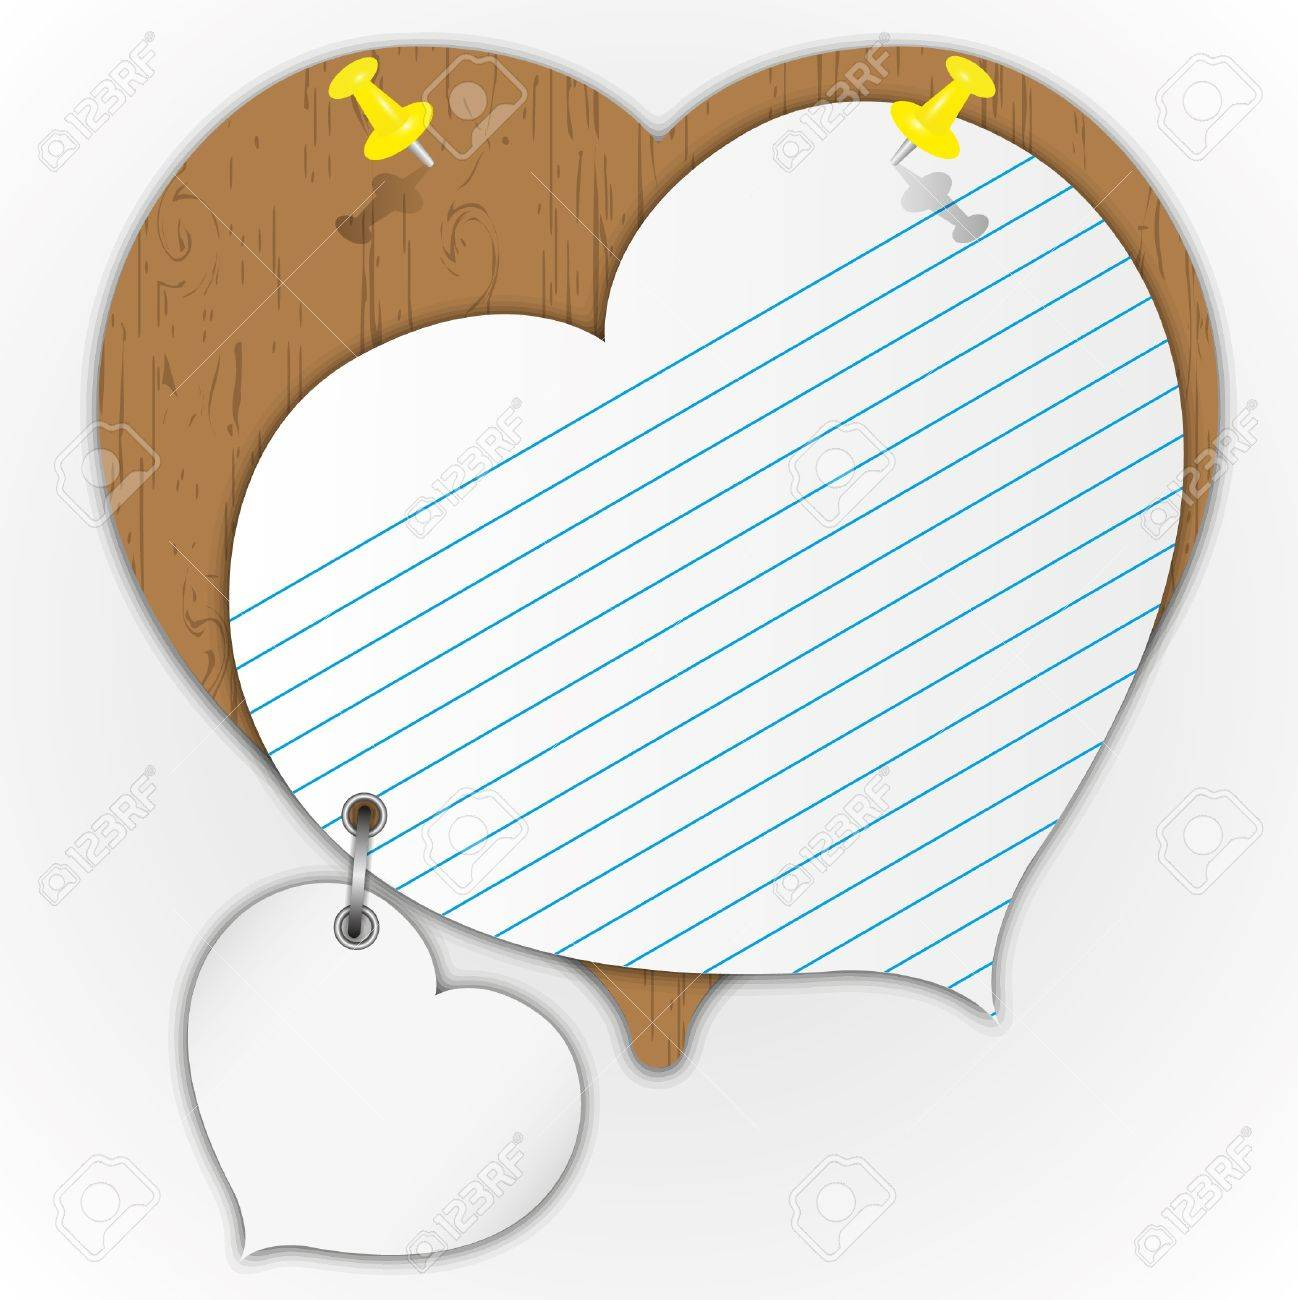 Sticky pad heart pattern on wooden board with pin. Stock Vector - 11872916